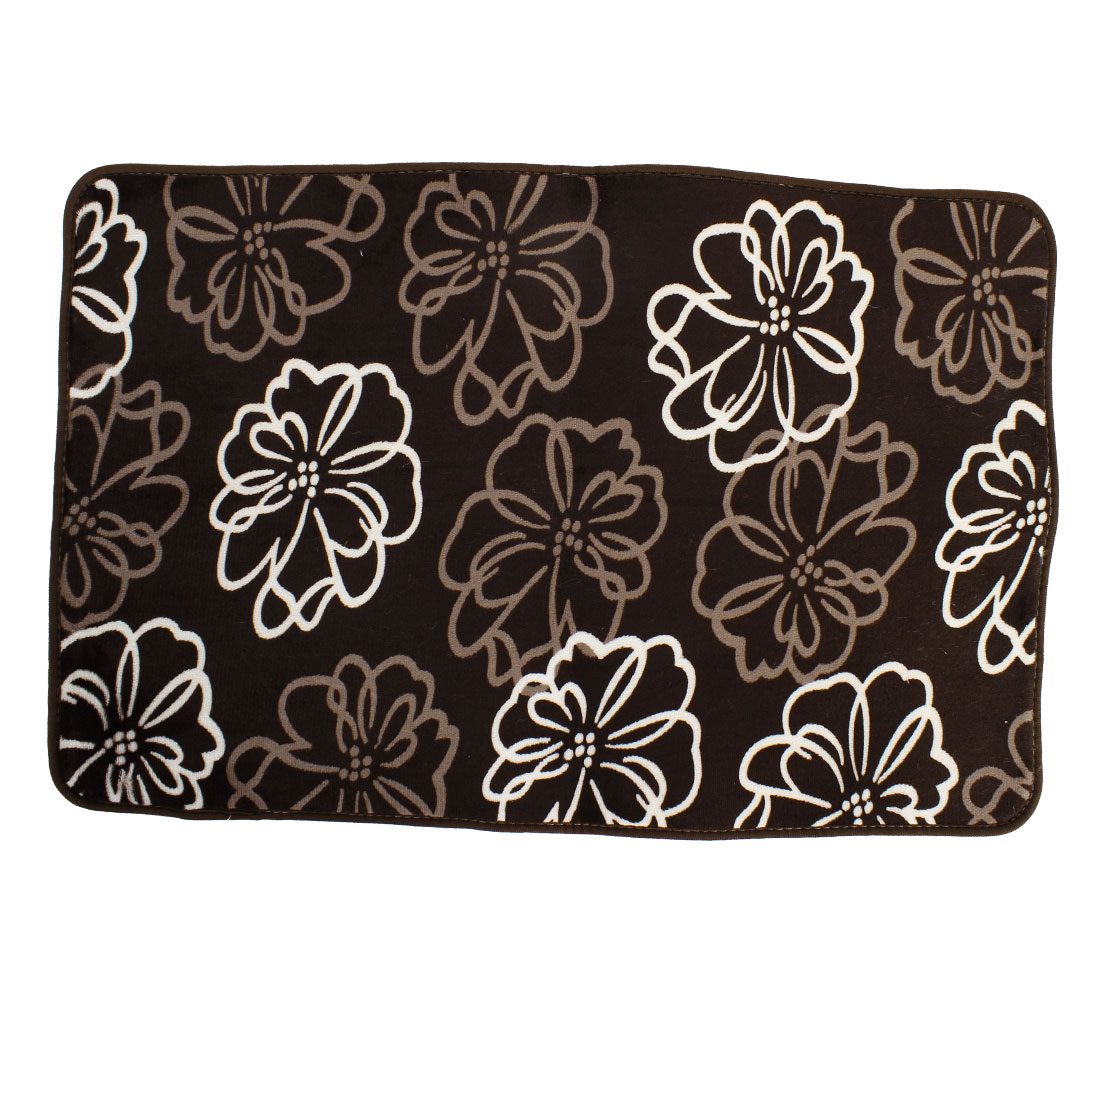 Transitional Flowers Pattern Floor Mats Area Rugs Carpets Footcloths 50 x 80cm